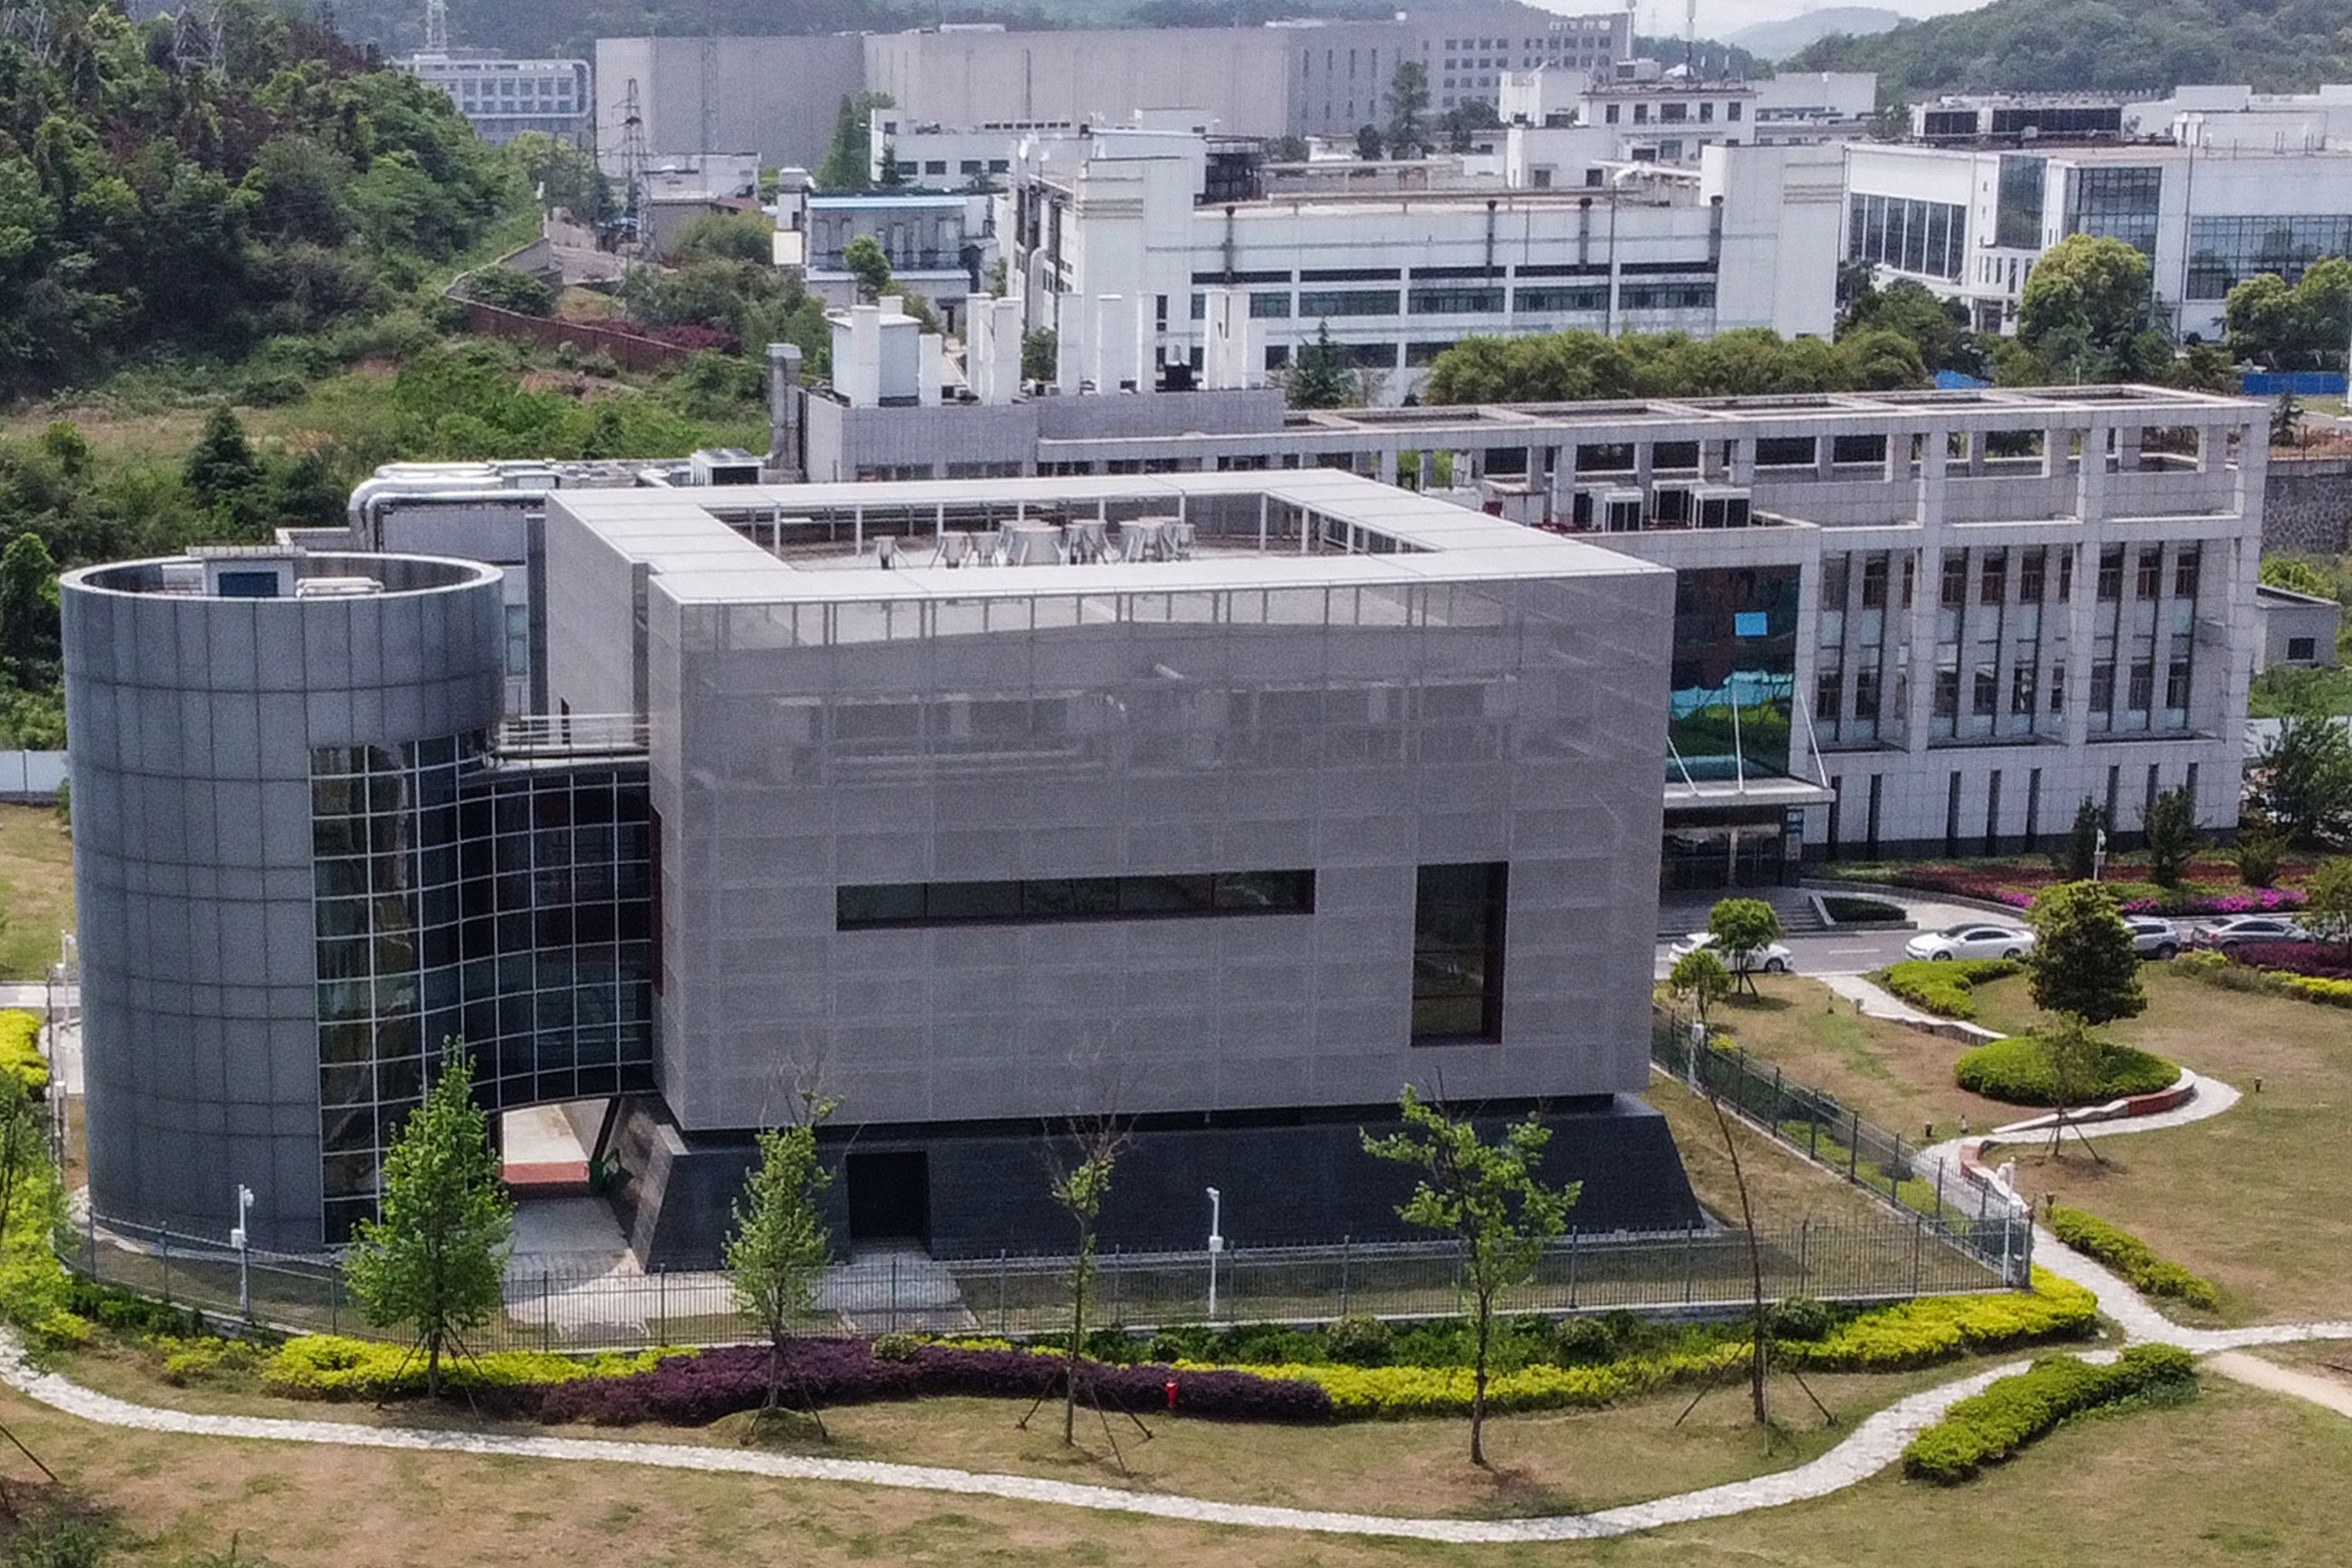 An aerial view shows the P4 laboratory at the Wuhan Institute of Virology in Wuhan in China's central Hubei province on April 17, 2020. (Photo by HECTOR RETAMAL/AFP via Getty Images)